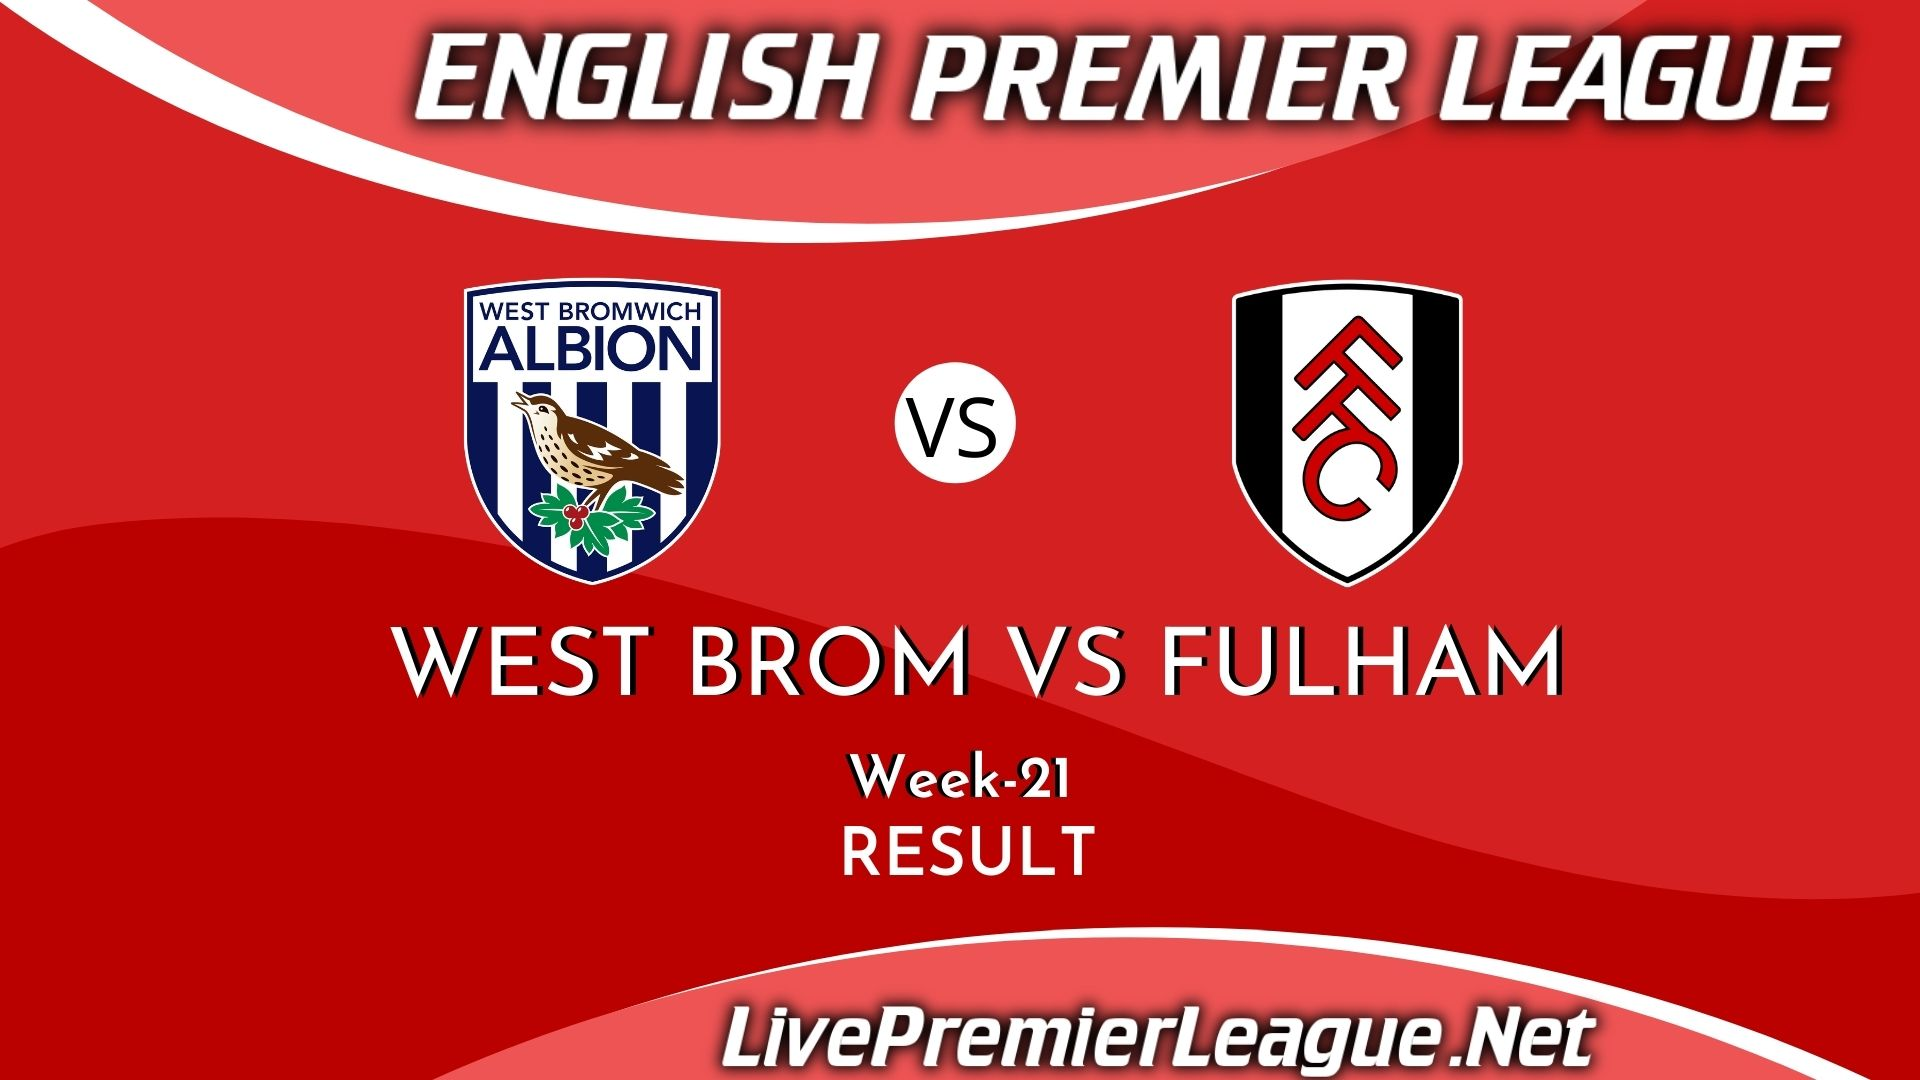 West Bromwich Albion Vs Fulham | Result 2021 EPL Week 21